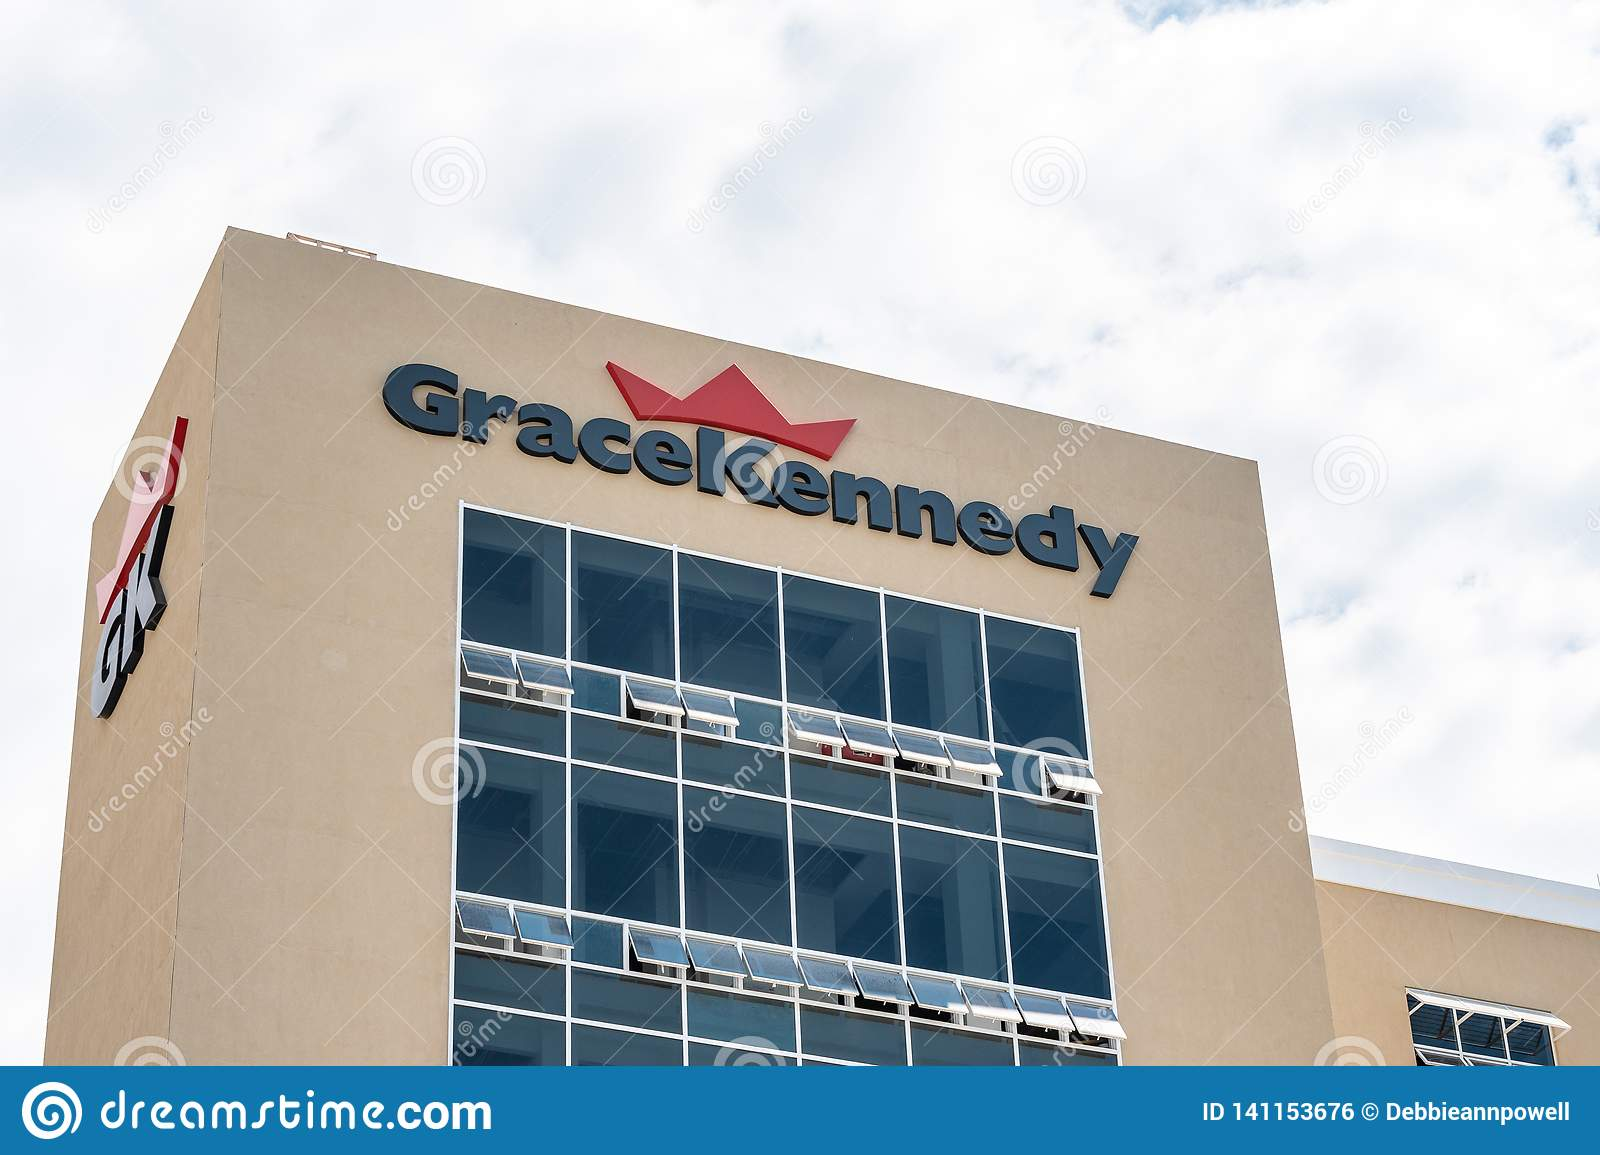 GraceKennedy, One Of The Largest Conglomerates In The Caribbean